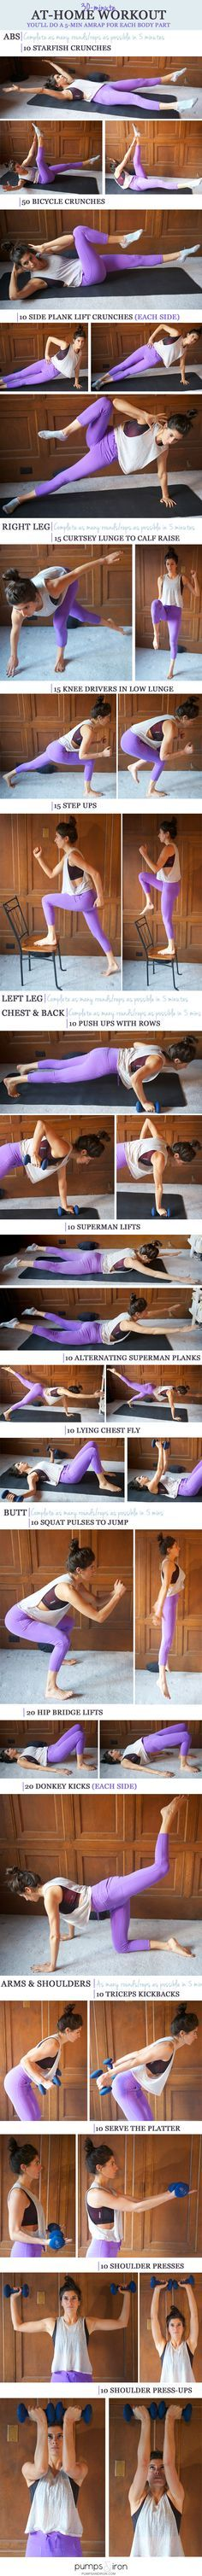 30-Minute At-Home Wo